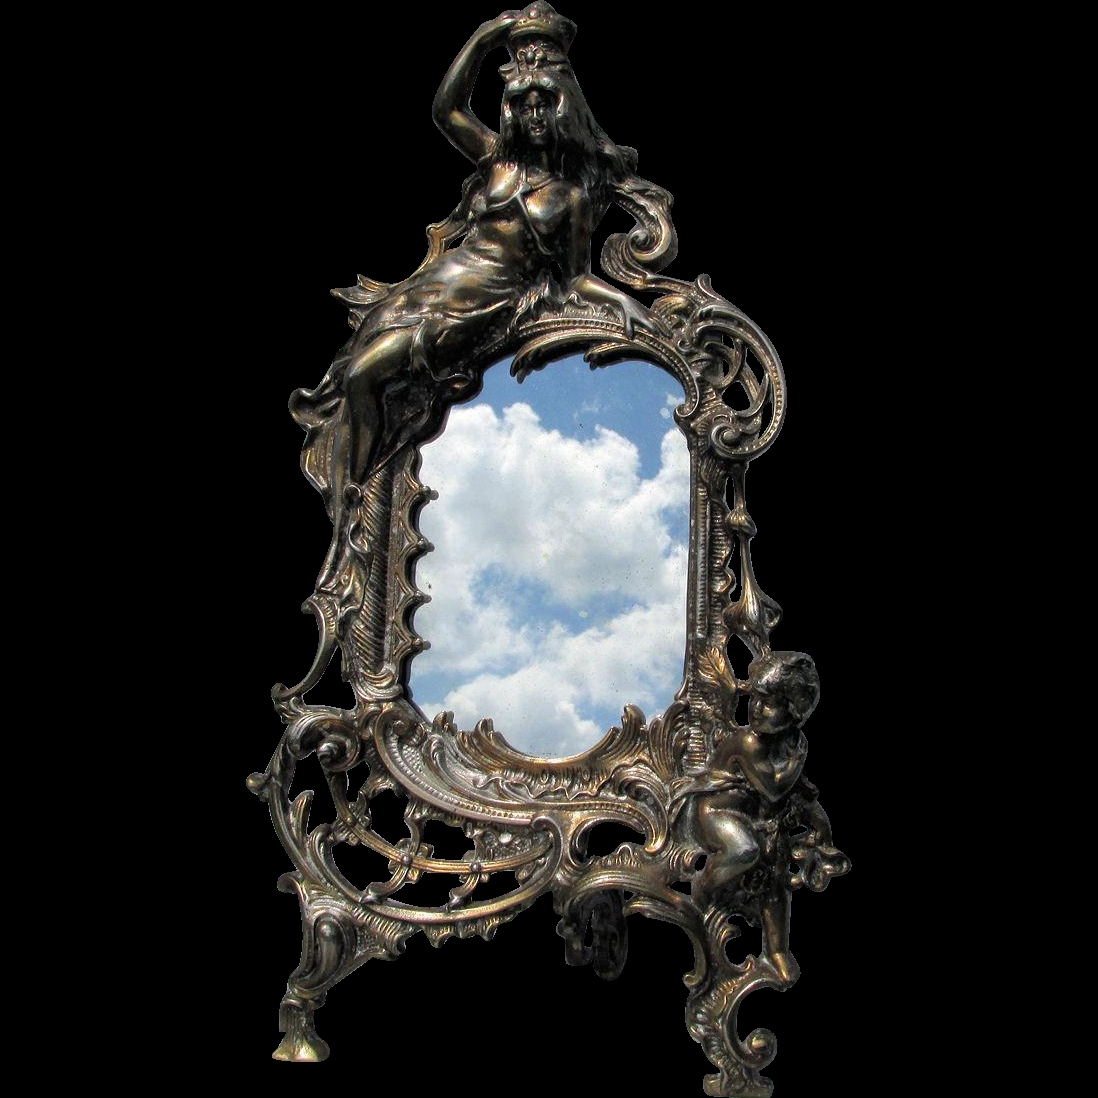 Antique Victorian Mirror Or Picture Frame With Queen Cherub From Intended For Victorian Mirrors Antique (Photo 1 of 15)